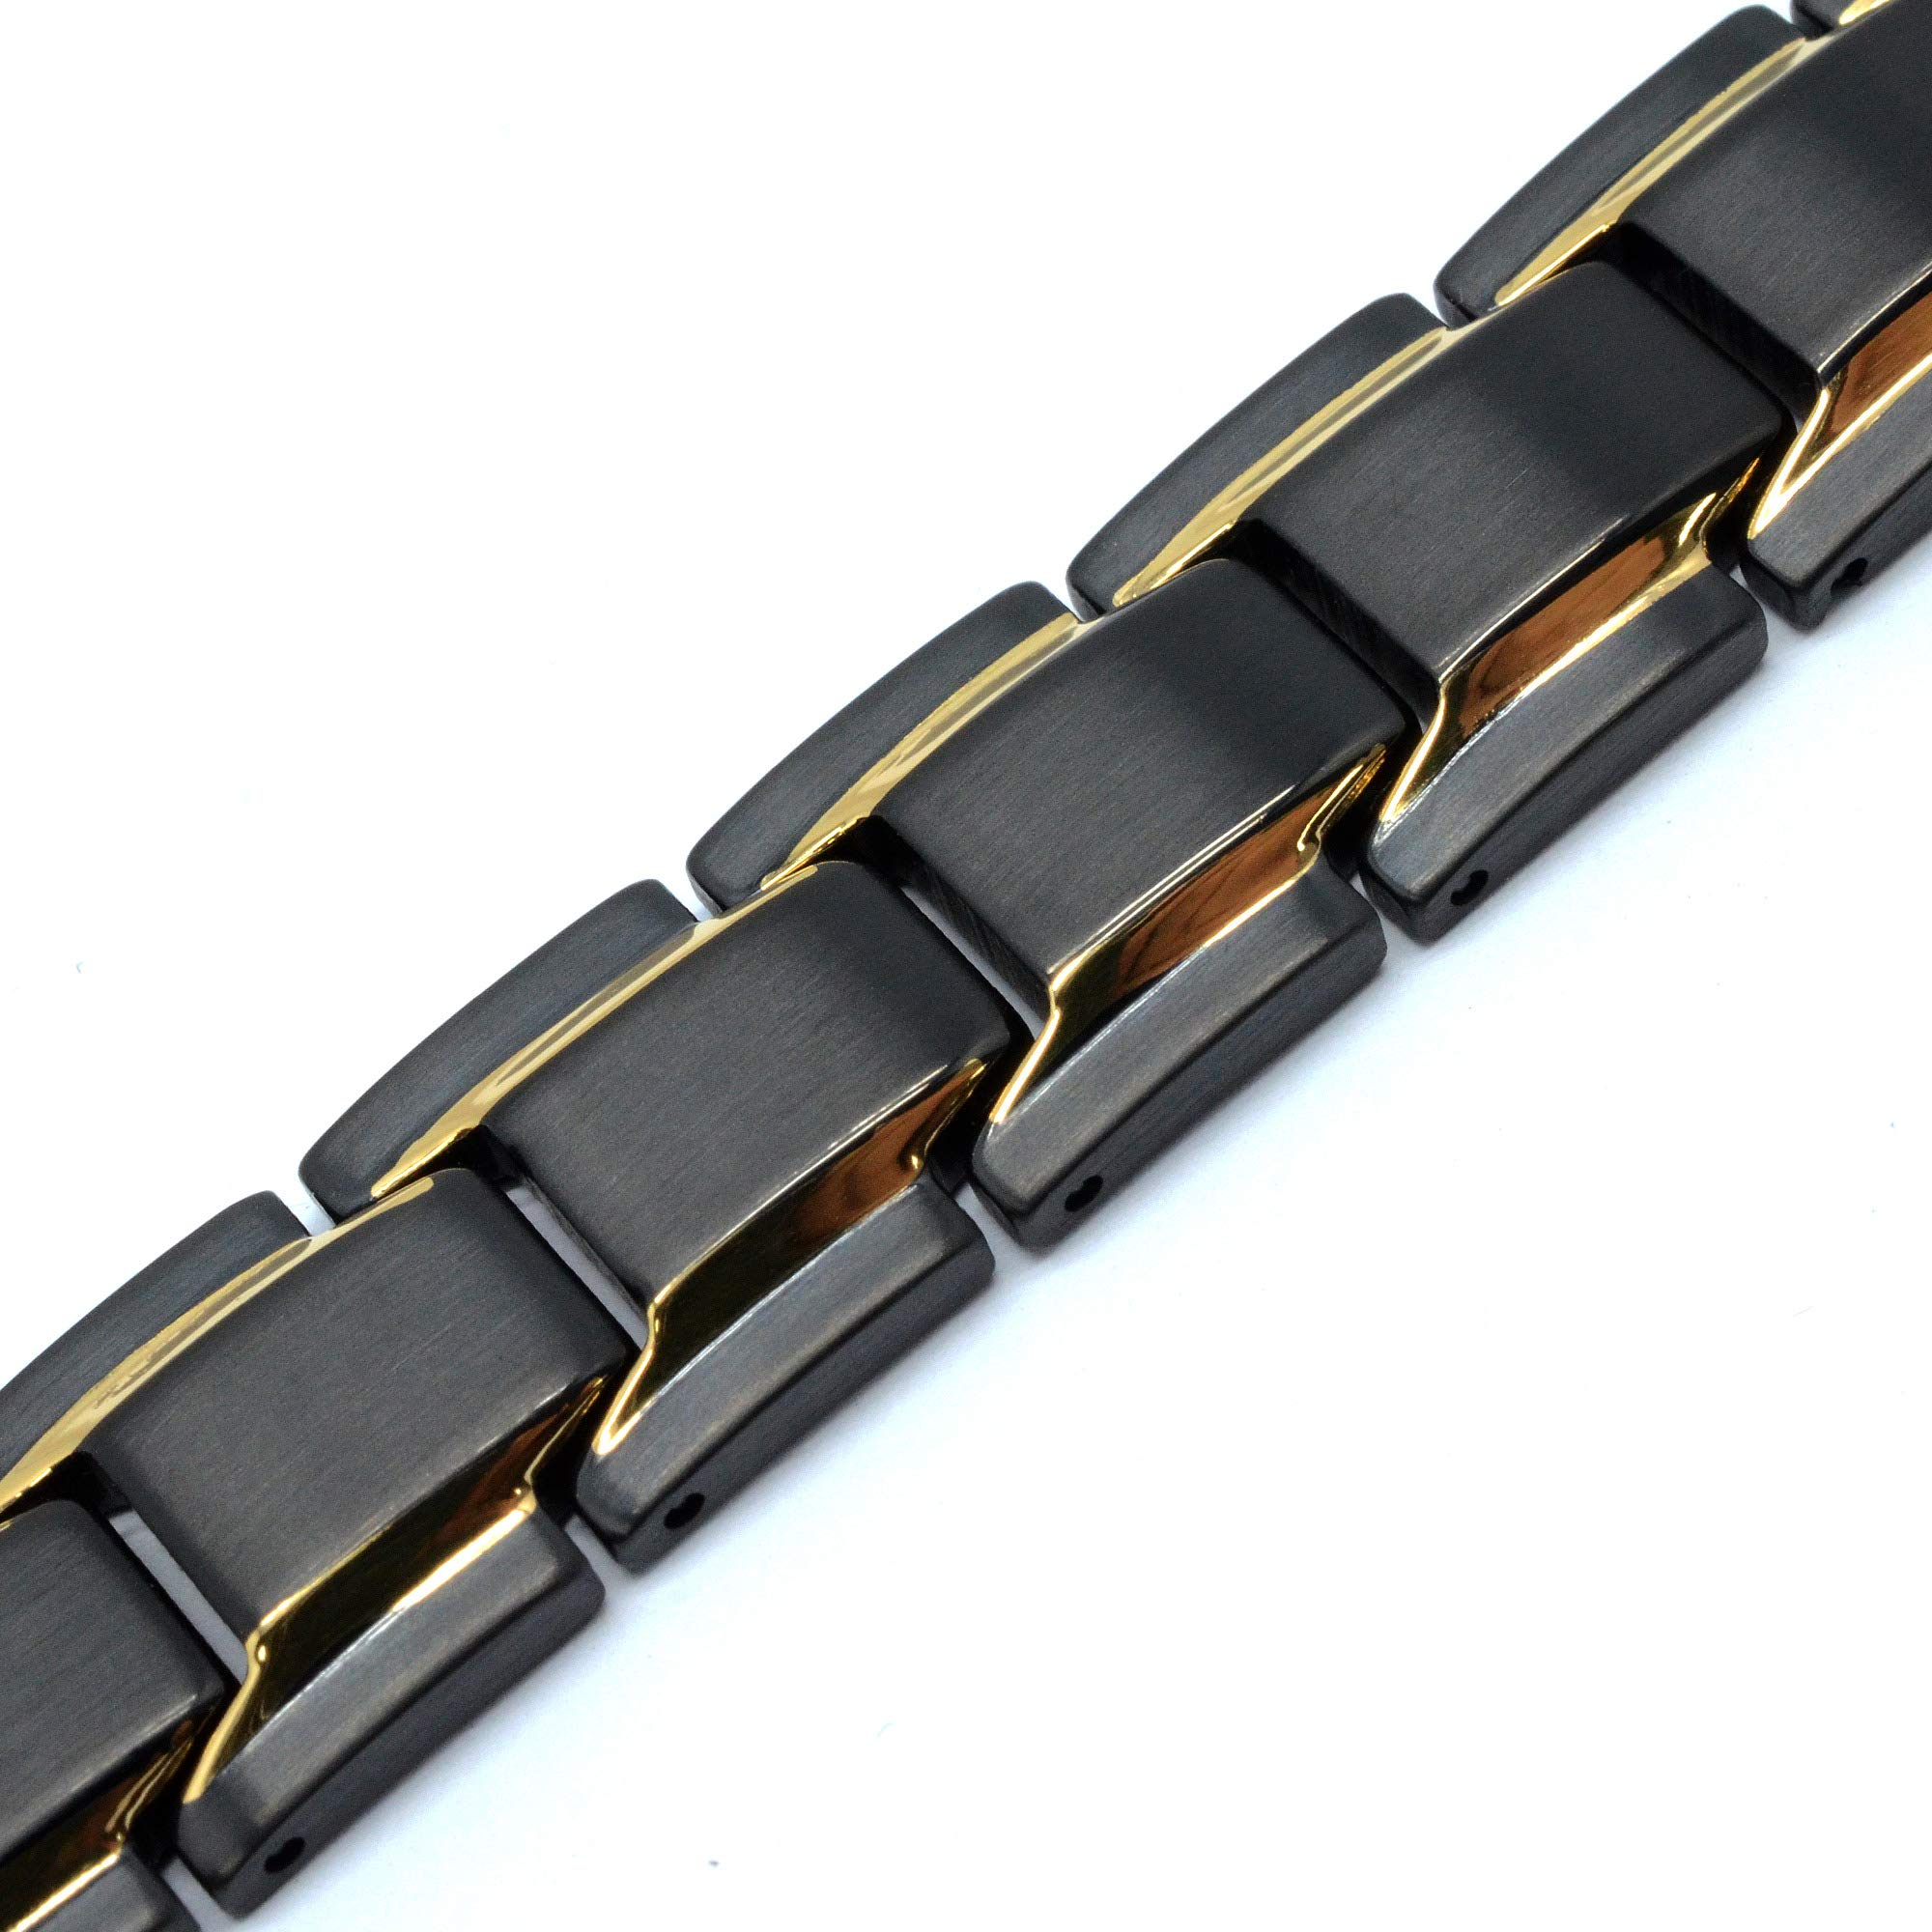 MagnetRX Ultra Strength Magnetic Therapy Bracelet Double Magnet Pain Relief for Arthritis and Carpal Tunnel by MagnetRX (Image #5)